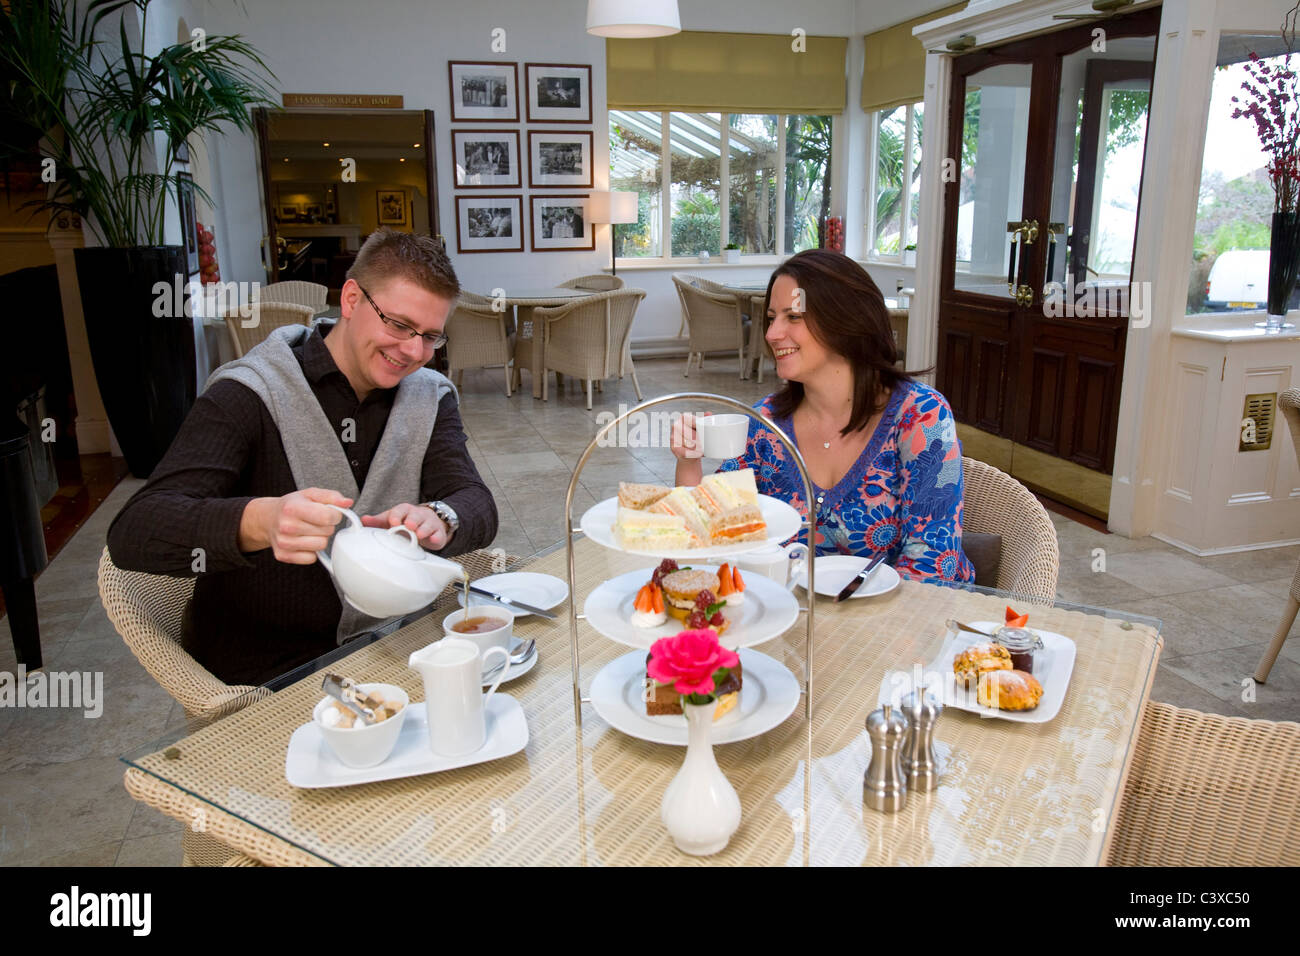 Man, Woman, Taking, Afternoon Tea, Cakes, Scones, Tea, Pastries, Royal Hotel, Ventnor, Isle of Wight, England, UK, - Stock Image